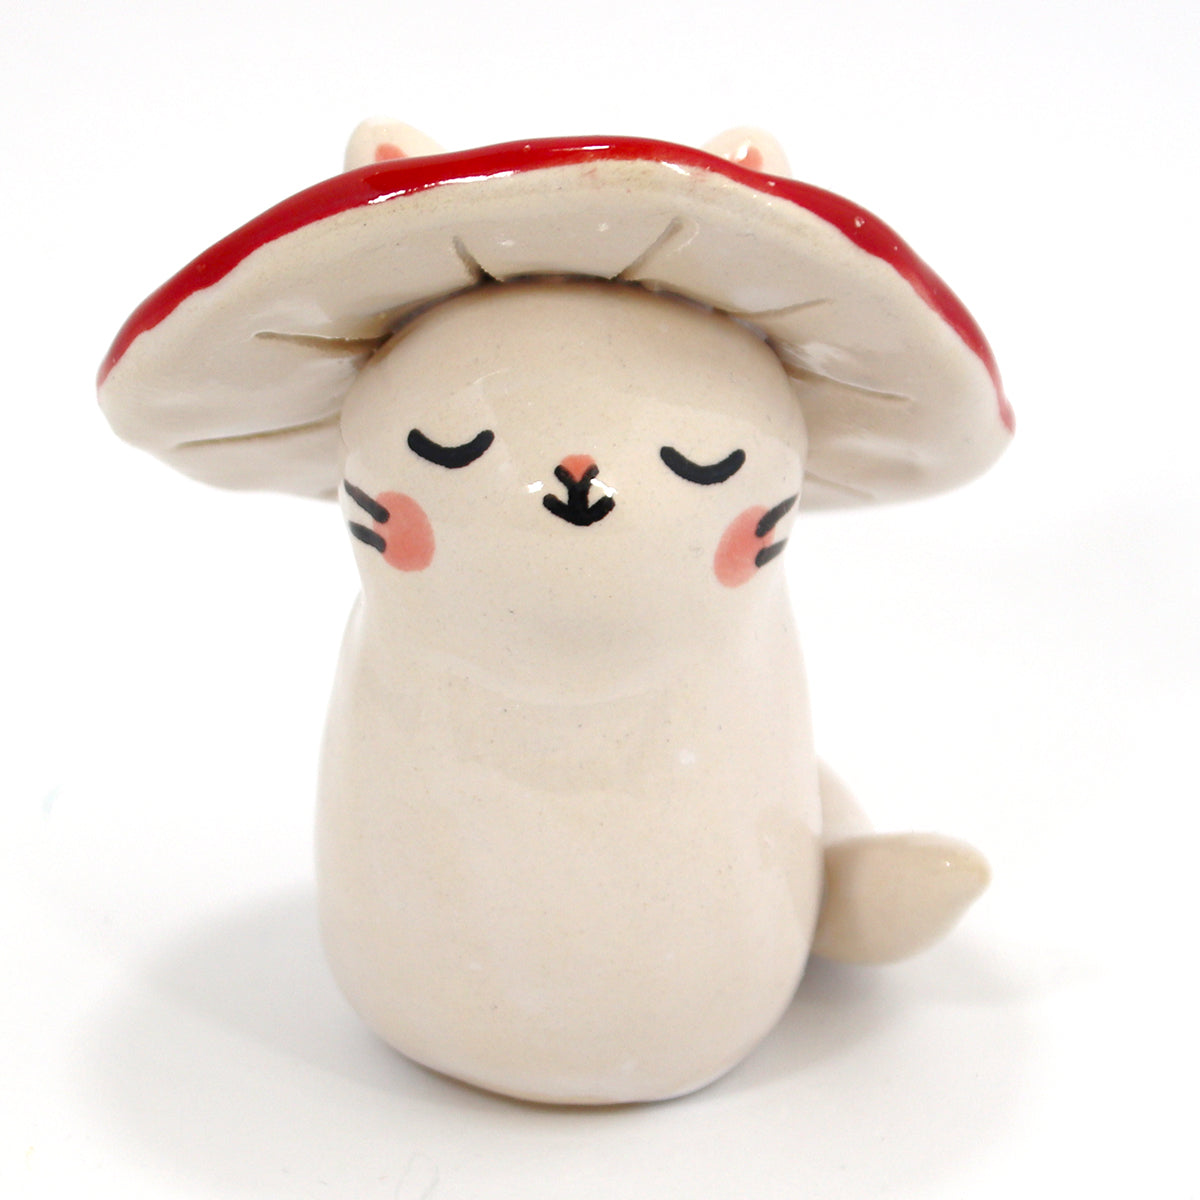 Ceramic Mushroom Kitty Figurine #1415